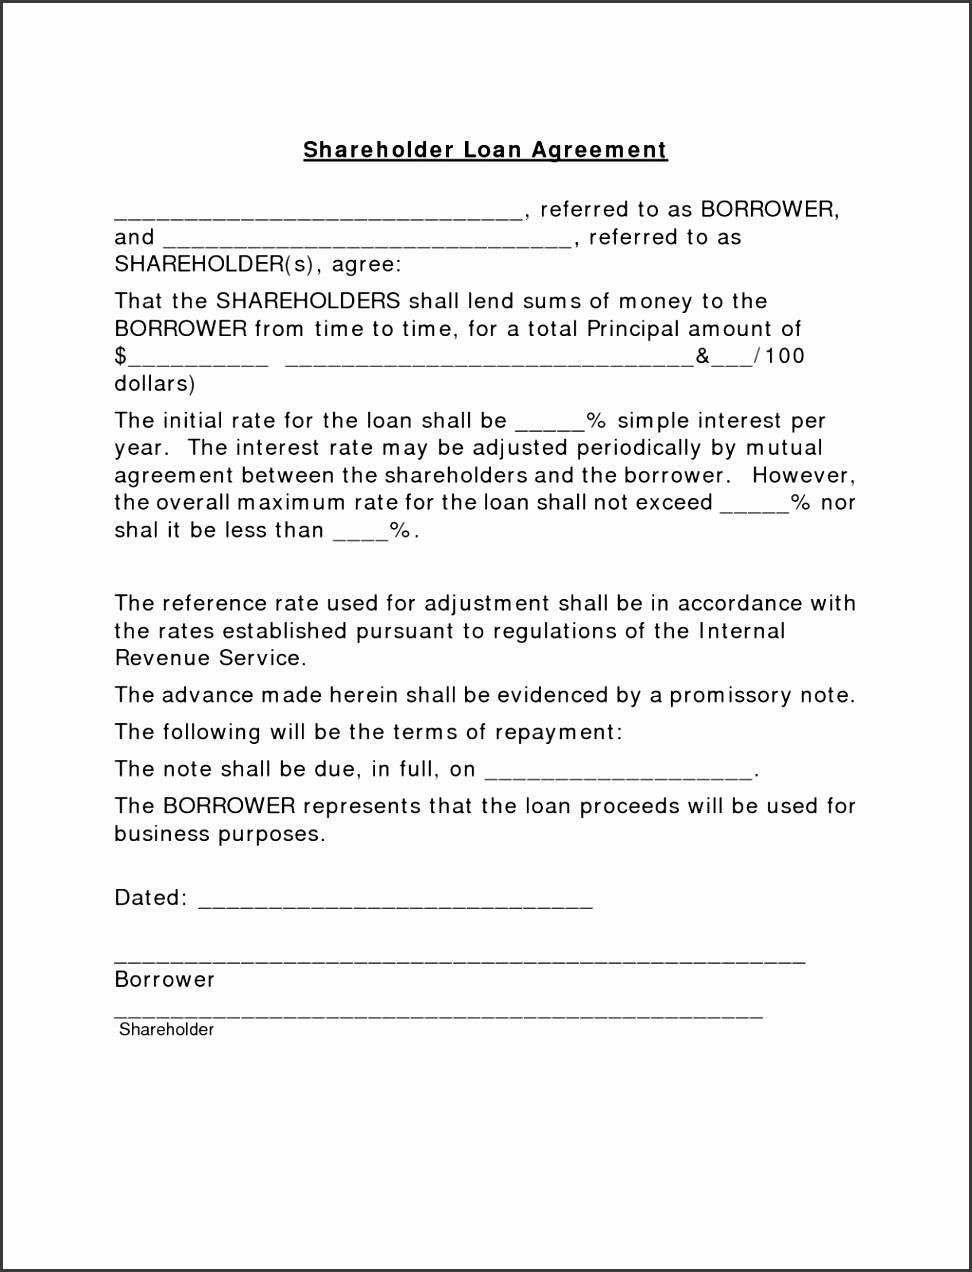 Convertible Employee Loan Agreement And Promissory Note Sample Subscription 1024x1325 Convertible Note Loan Agreement Promissory Template Demand 6